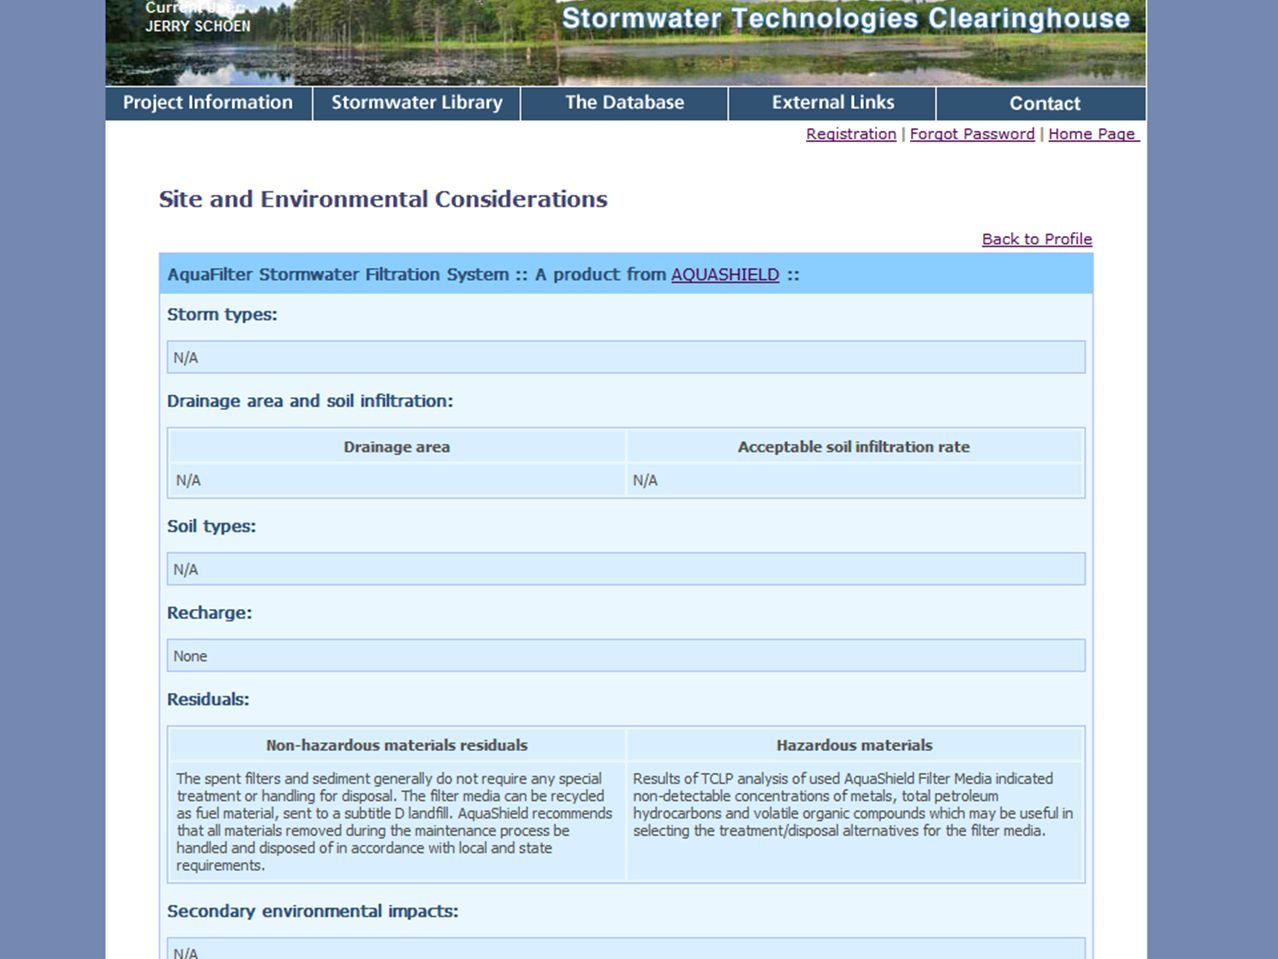 Site and Environmental Consideration page contains information on any required setbacks or depth to water table, disposal of BMP-captured materials, etc.